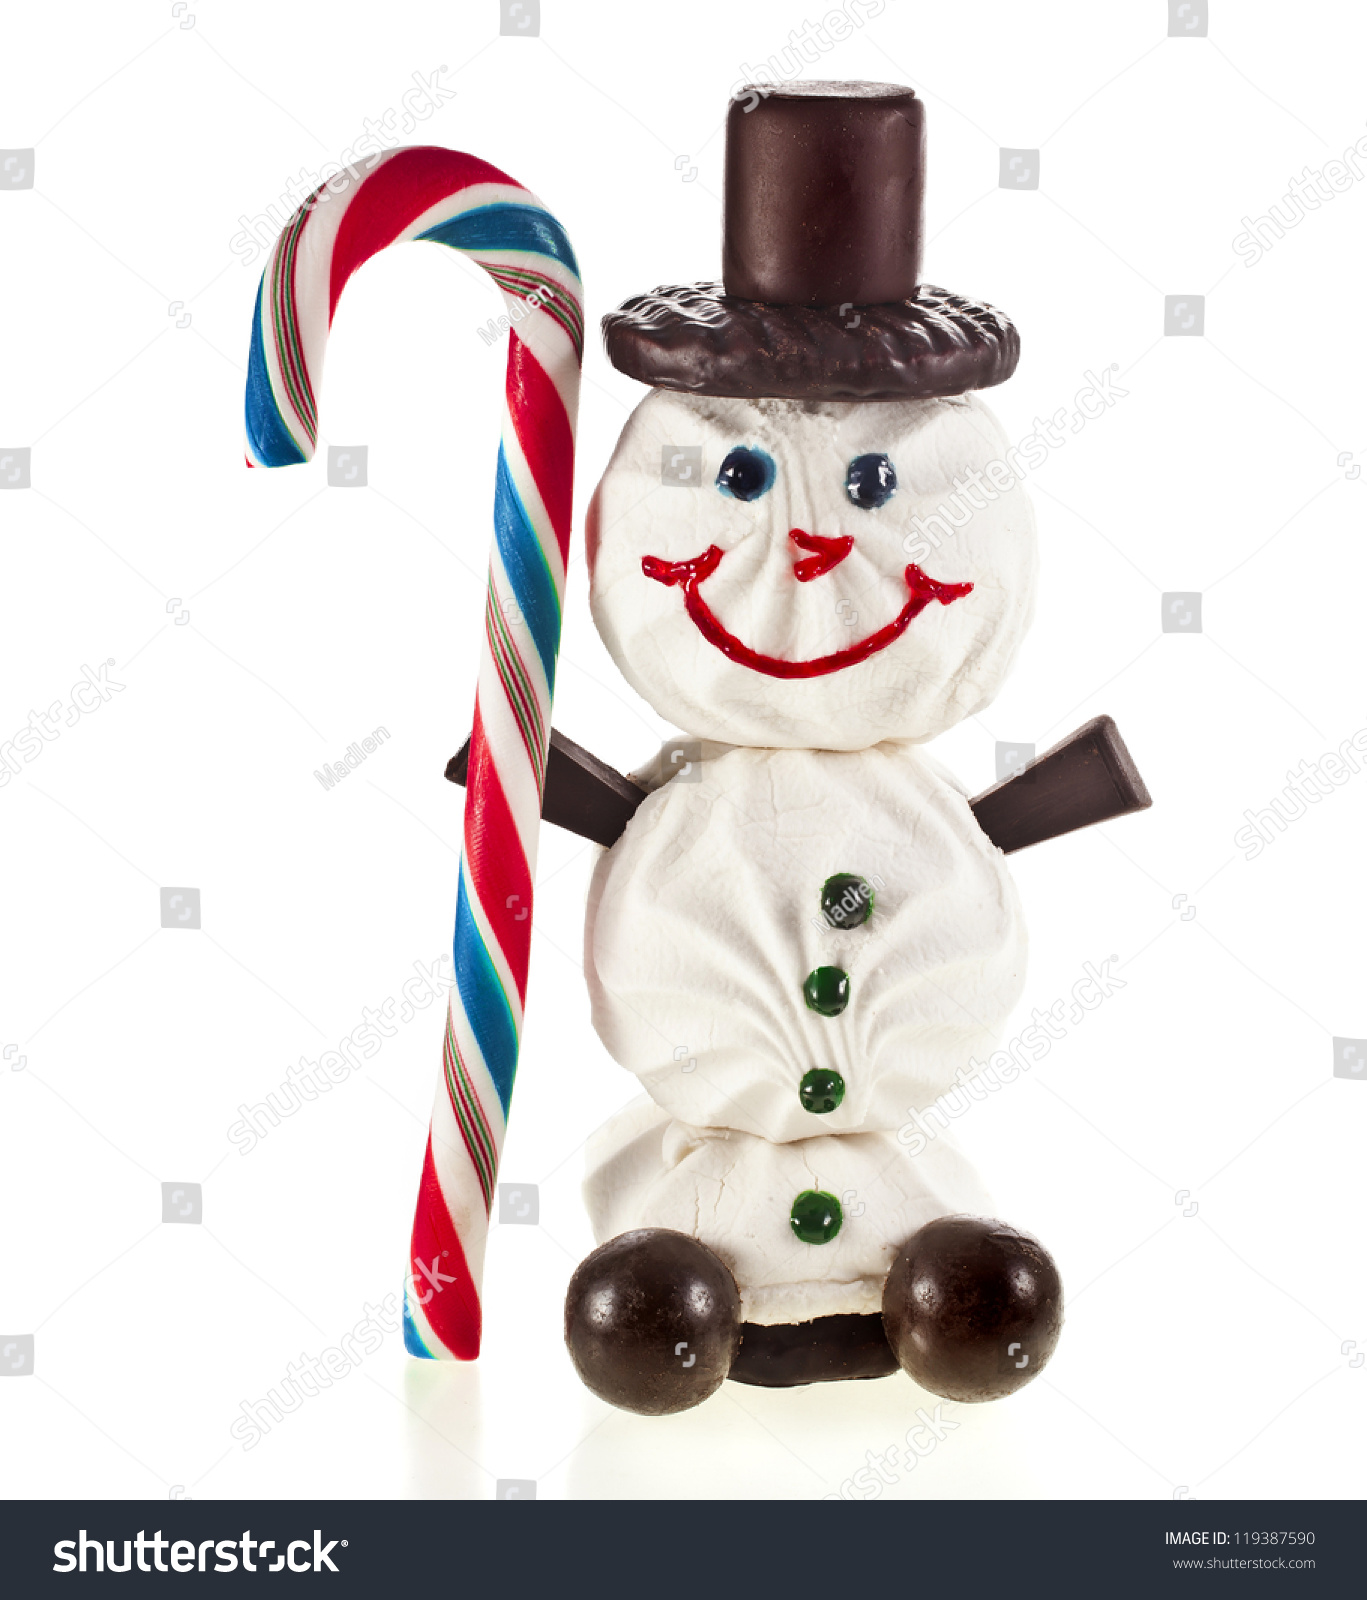 Happy Snowman Made Of Marshmallow, Chocolate, Candy, Lollipop And Jam Isolated On White